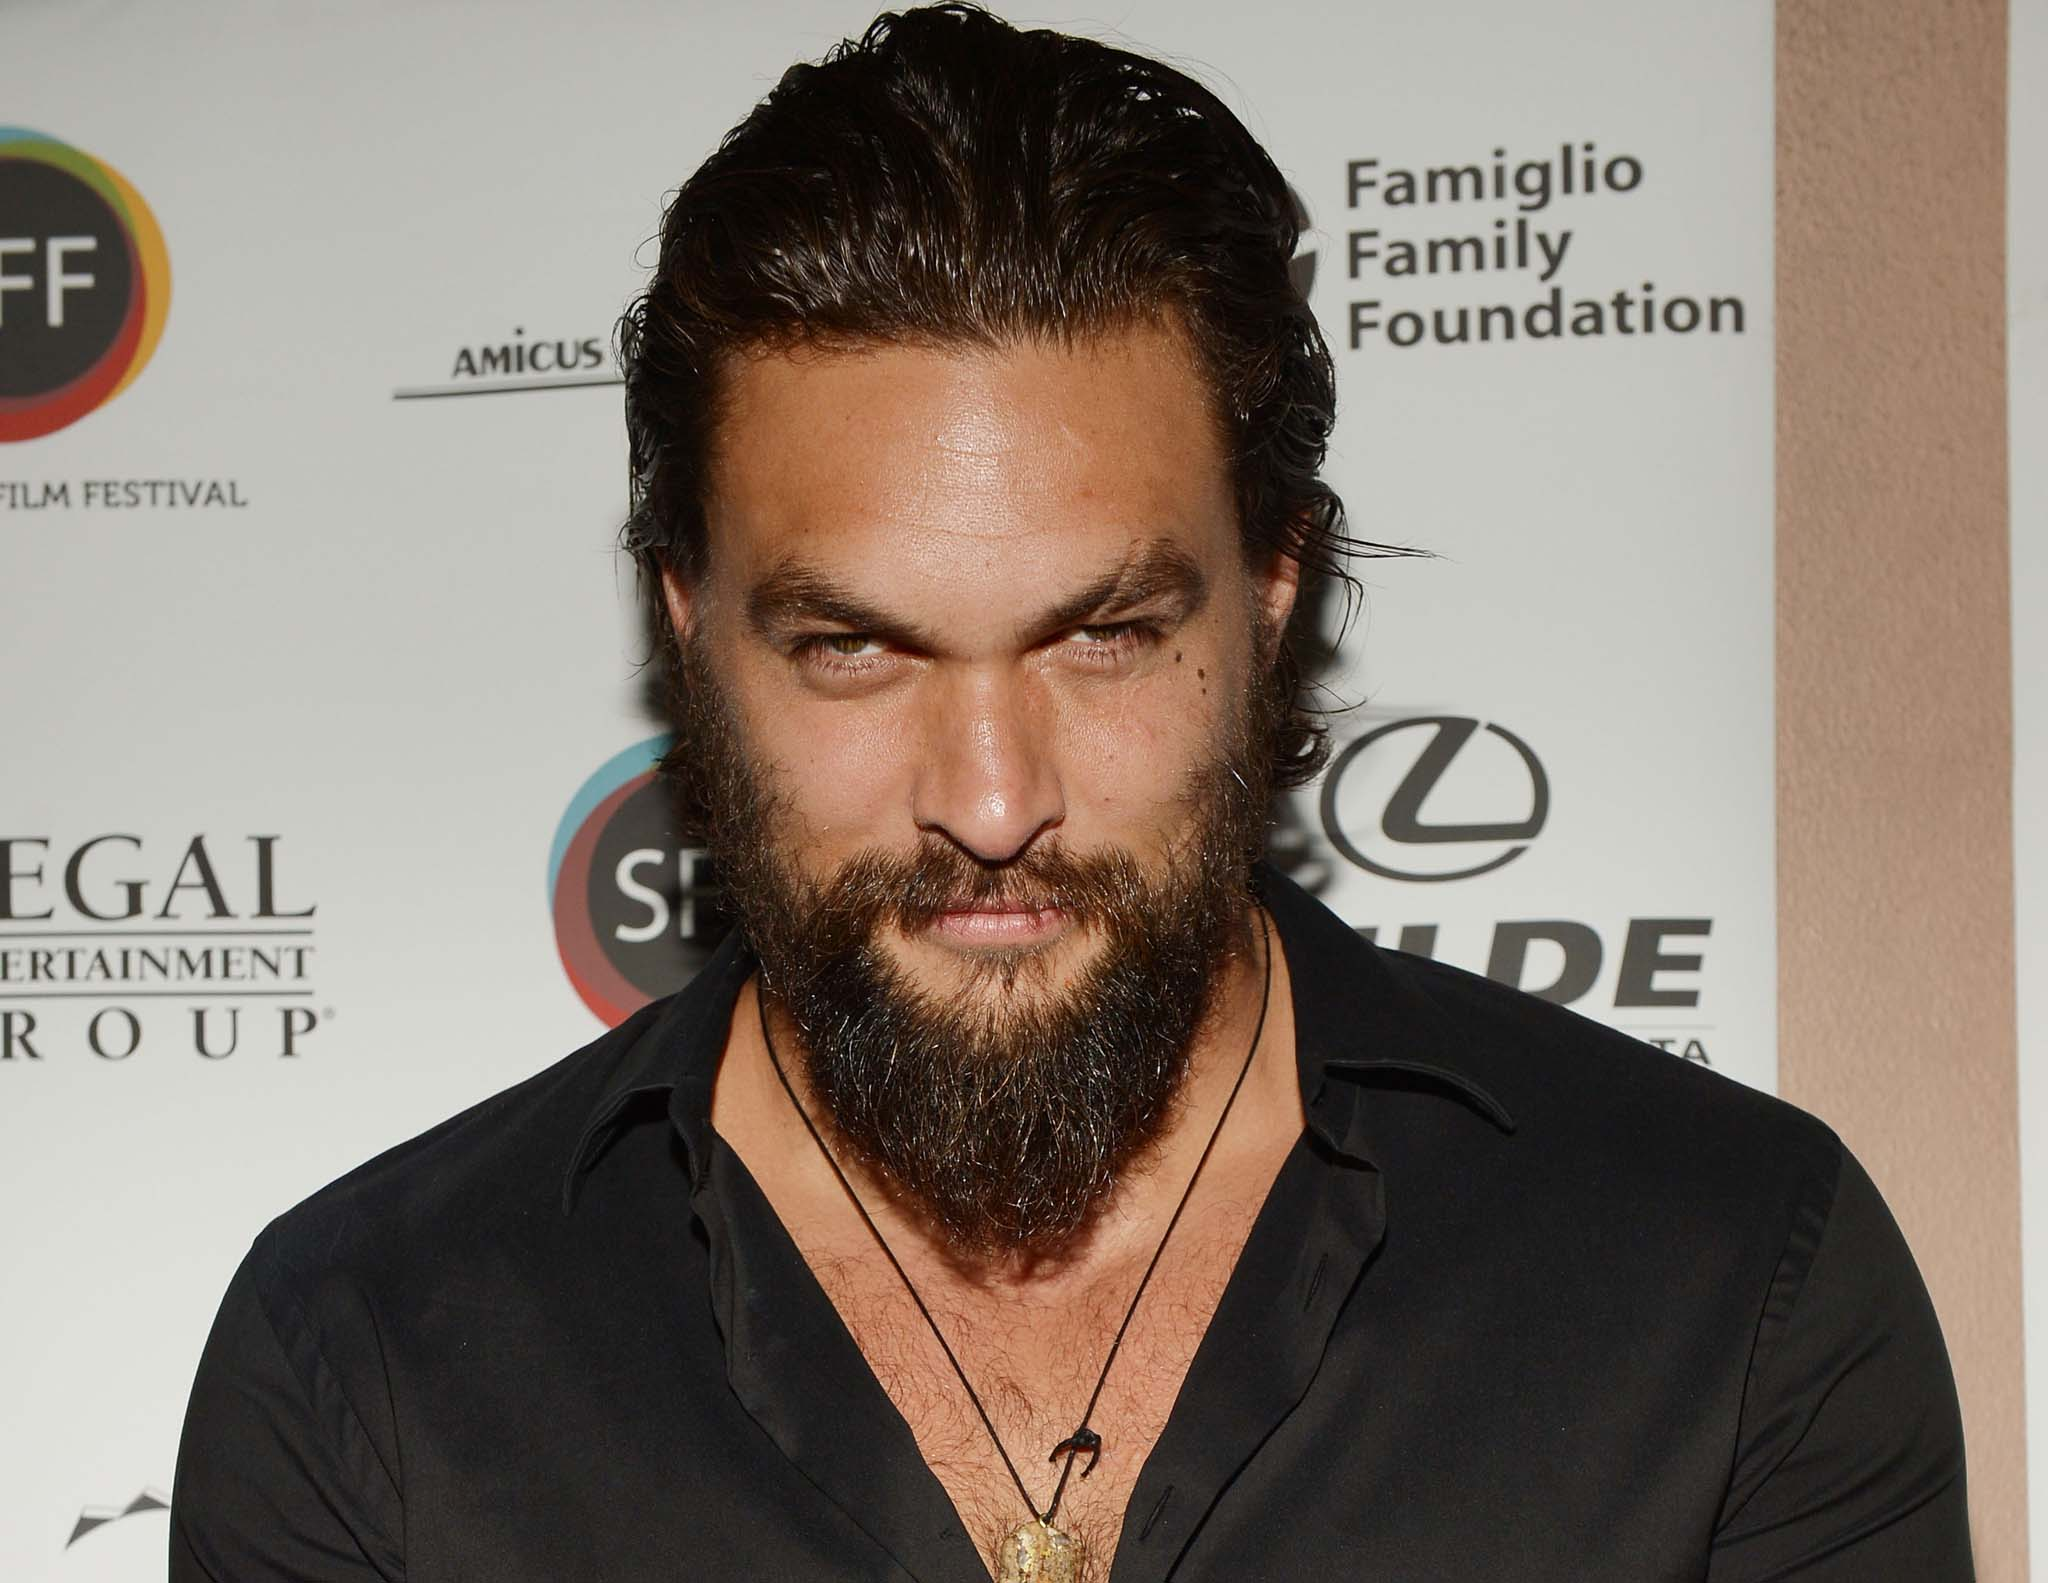 Watch Game of Thrones star Jason Momoa perform a Haka forJason Momoa